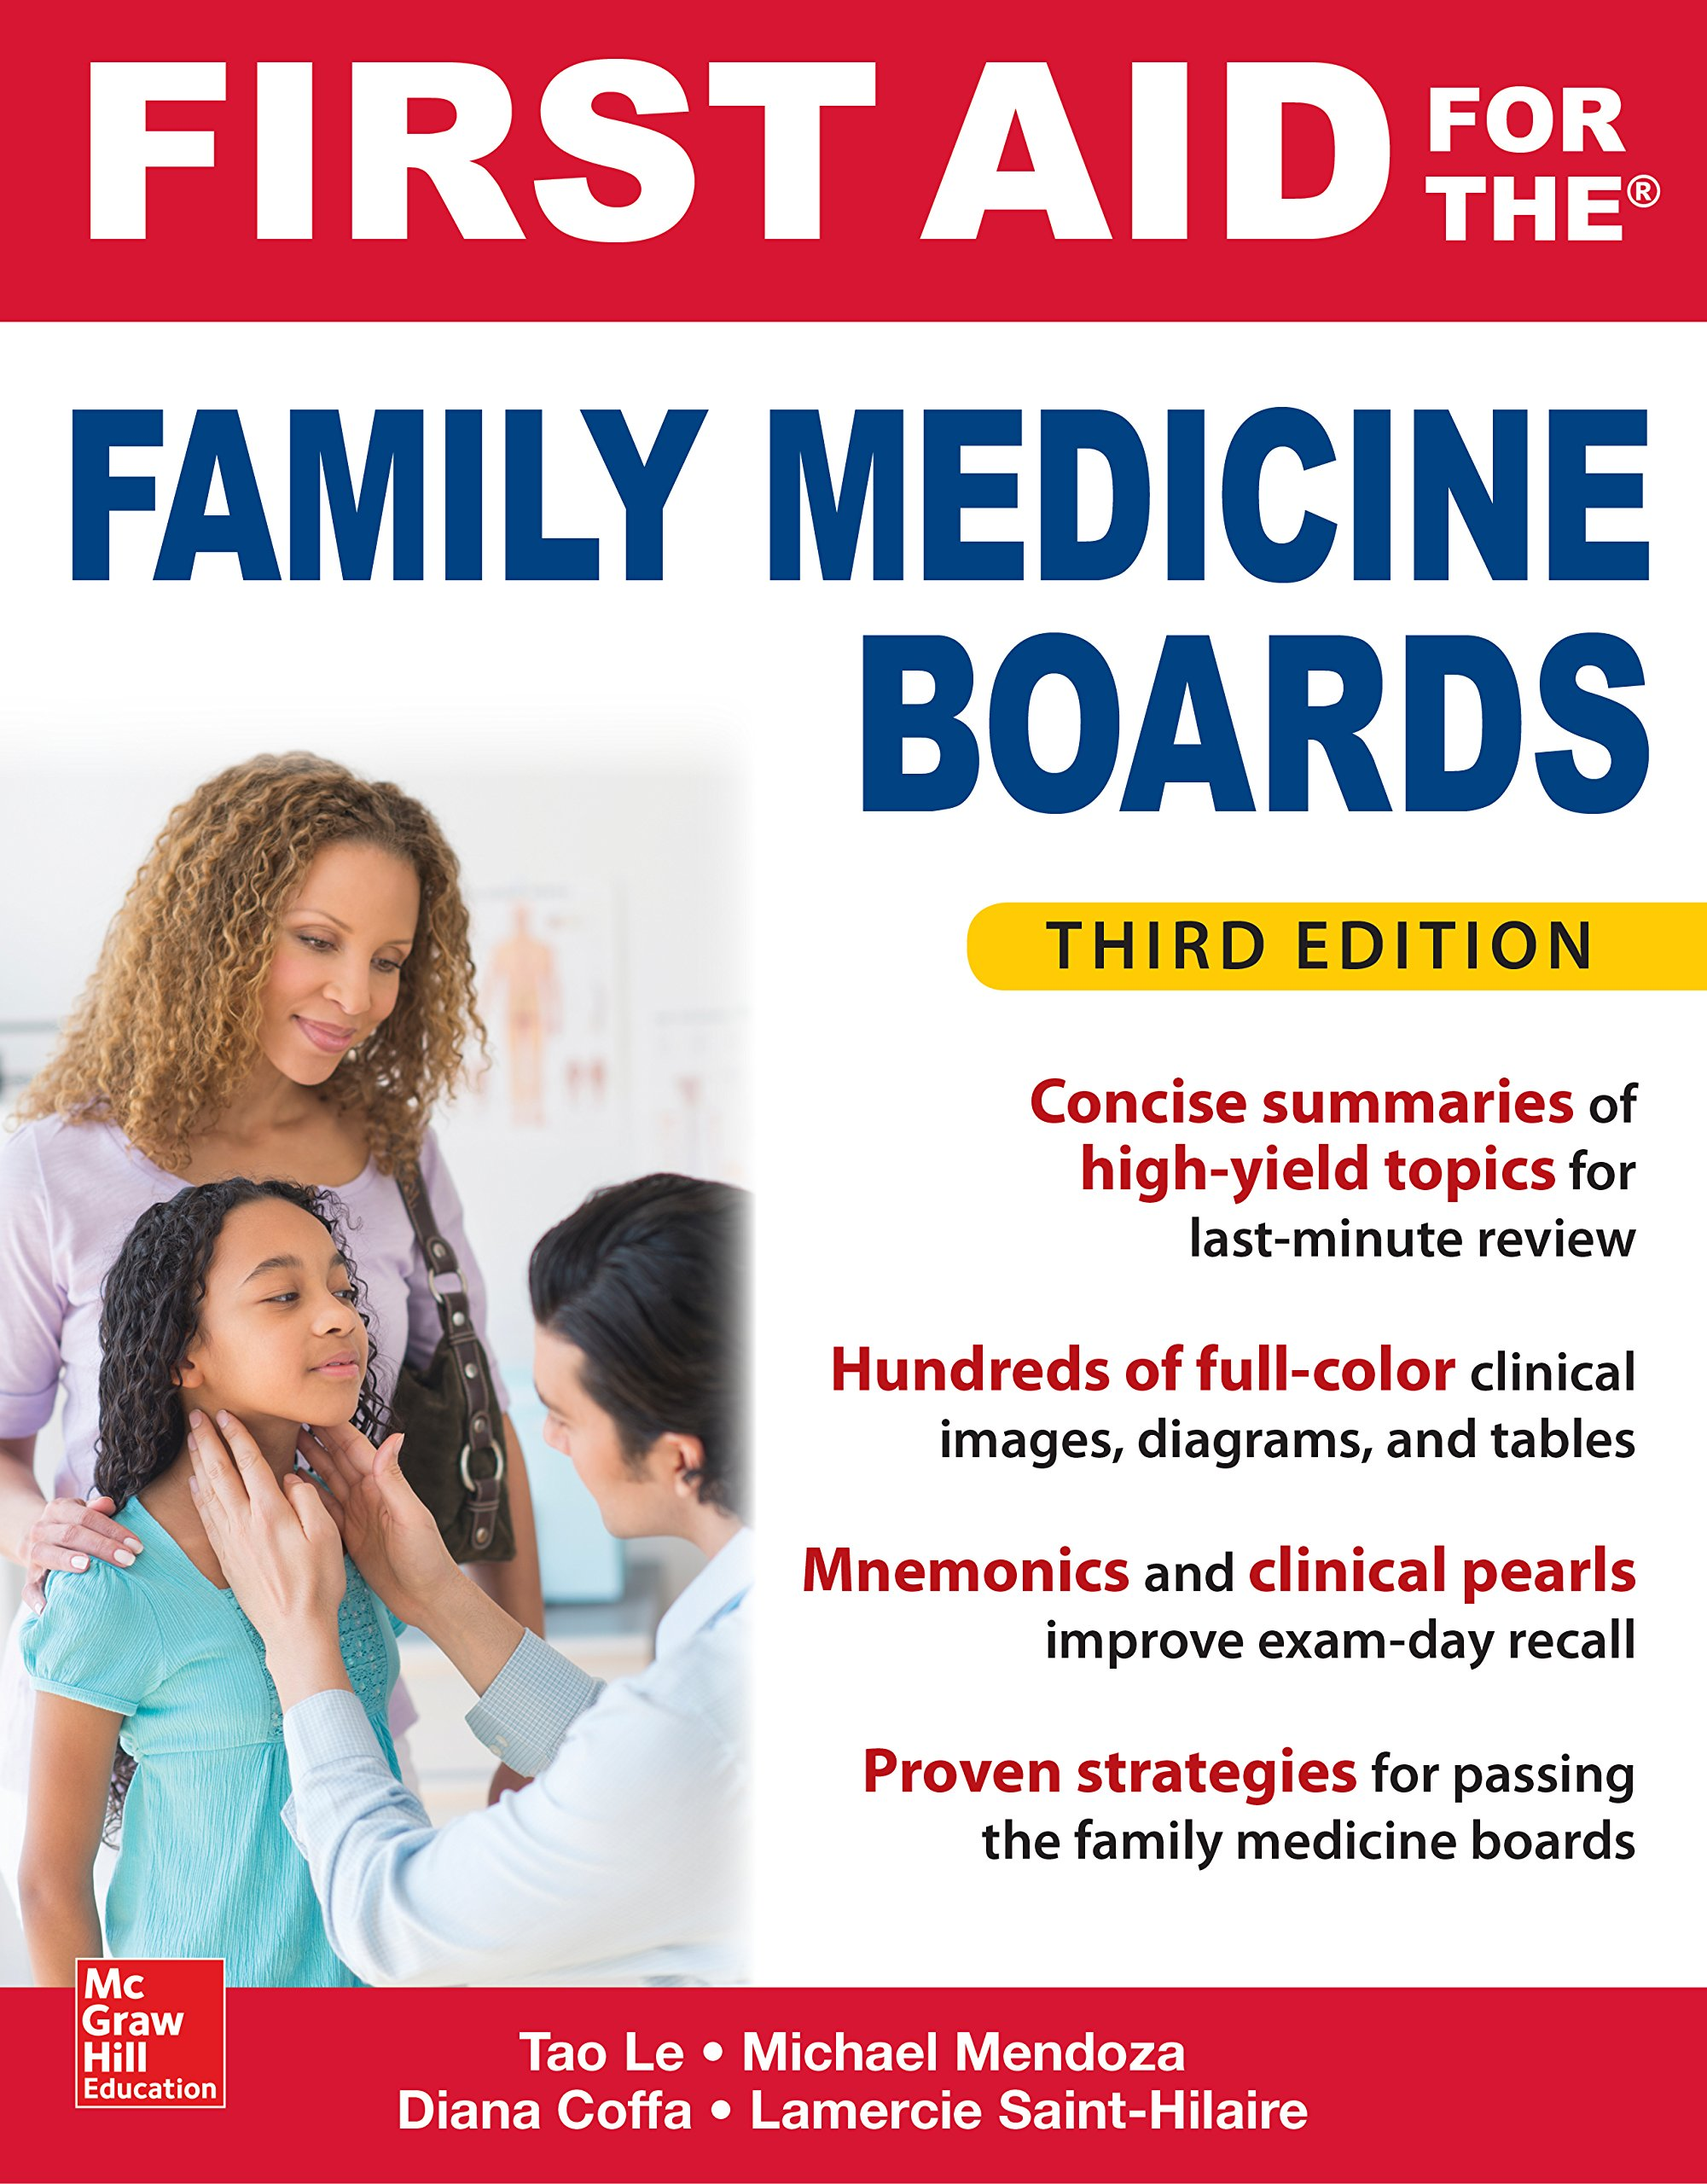 First Aid for the Family Medicine Boards, Third Edition (1st Aid for the Family  Medicine Boards) - Kindle edition by Le, Tao, Mendoza, Michael, Coffa,  Diana, Saint-Hilaire, Lamercie. Professional & Technical Kindle